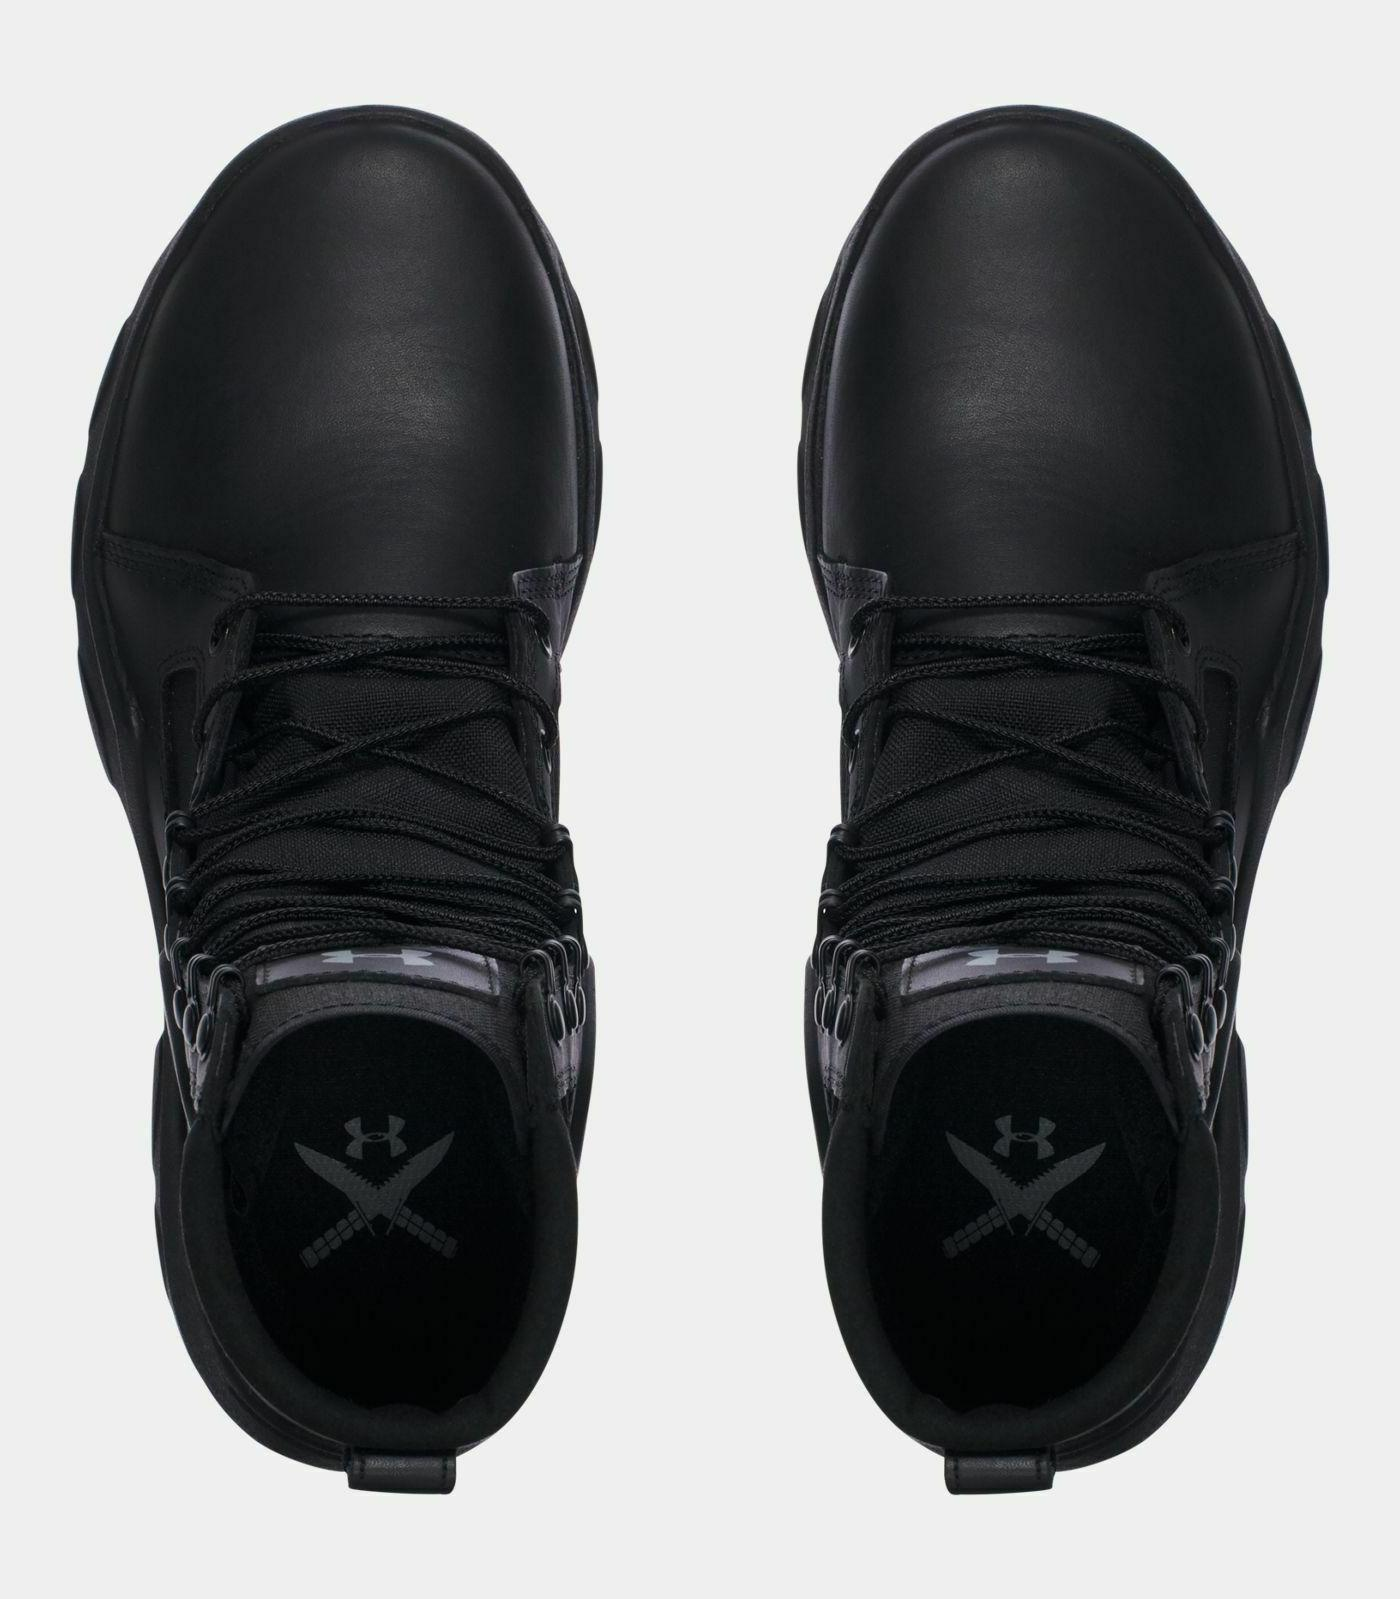 """Under UA 8"""" Motorcycle Boots 10.5"""